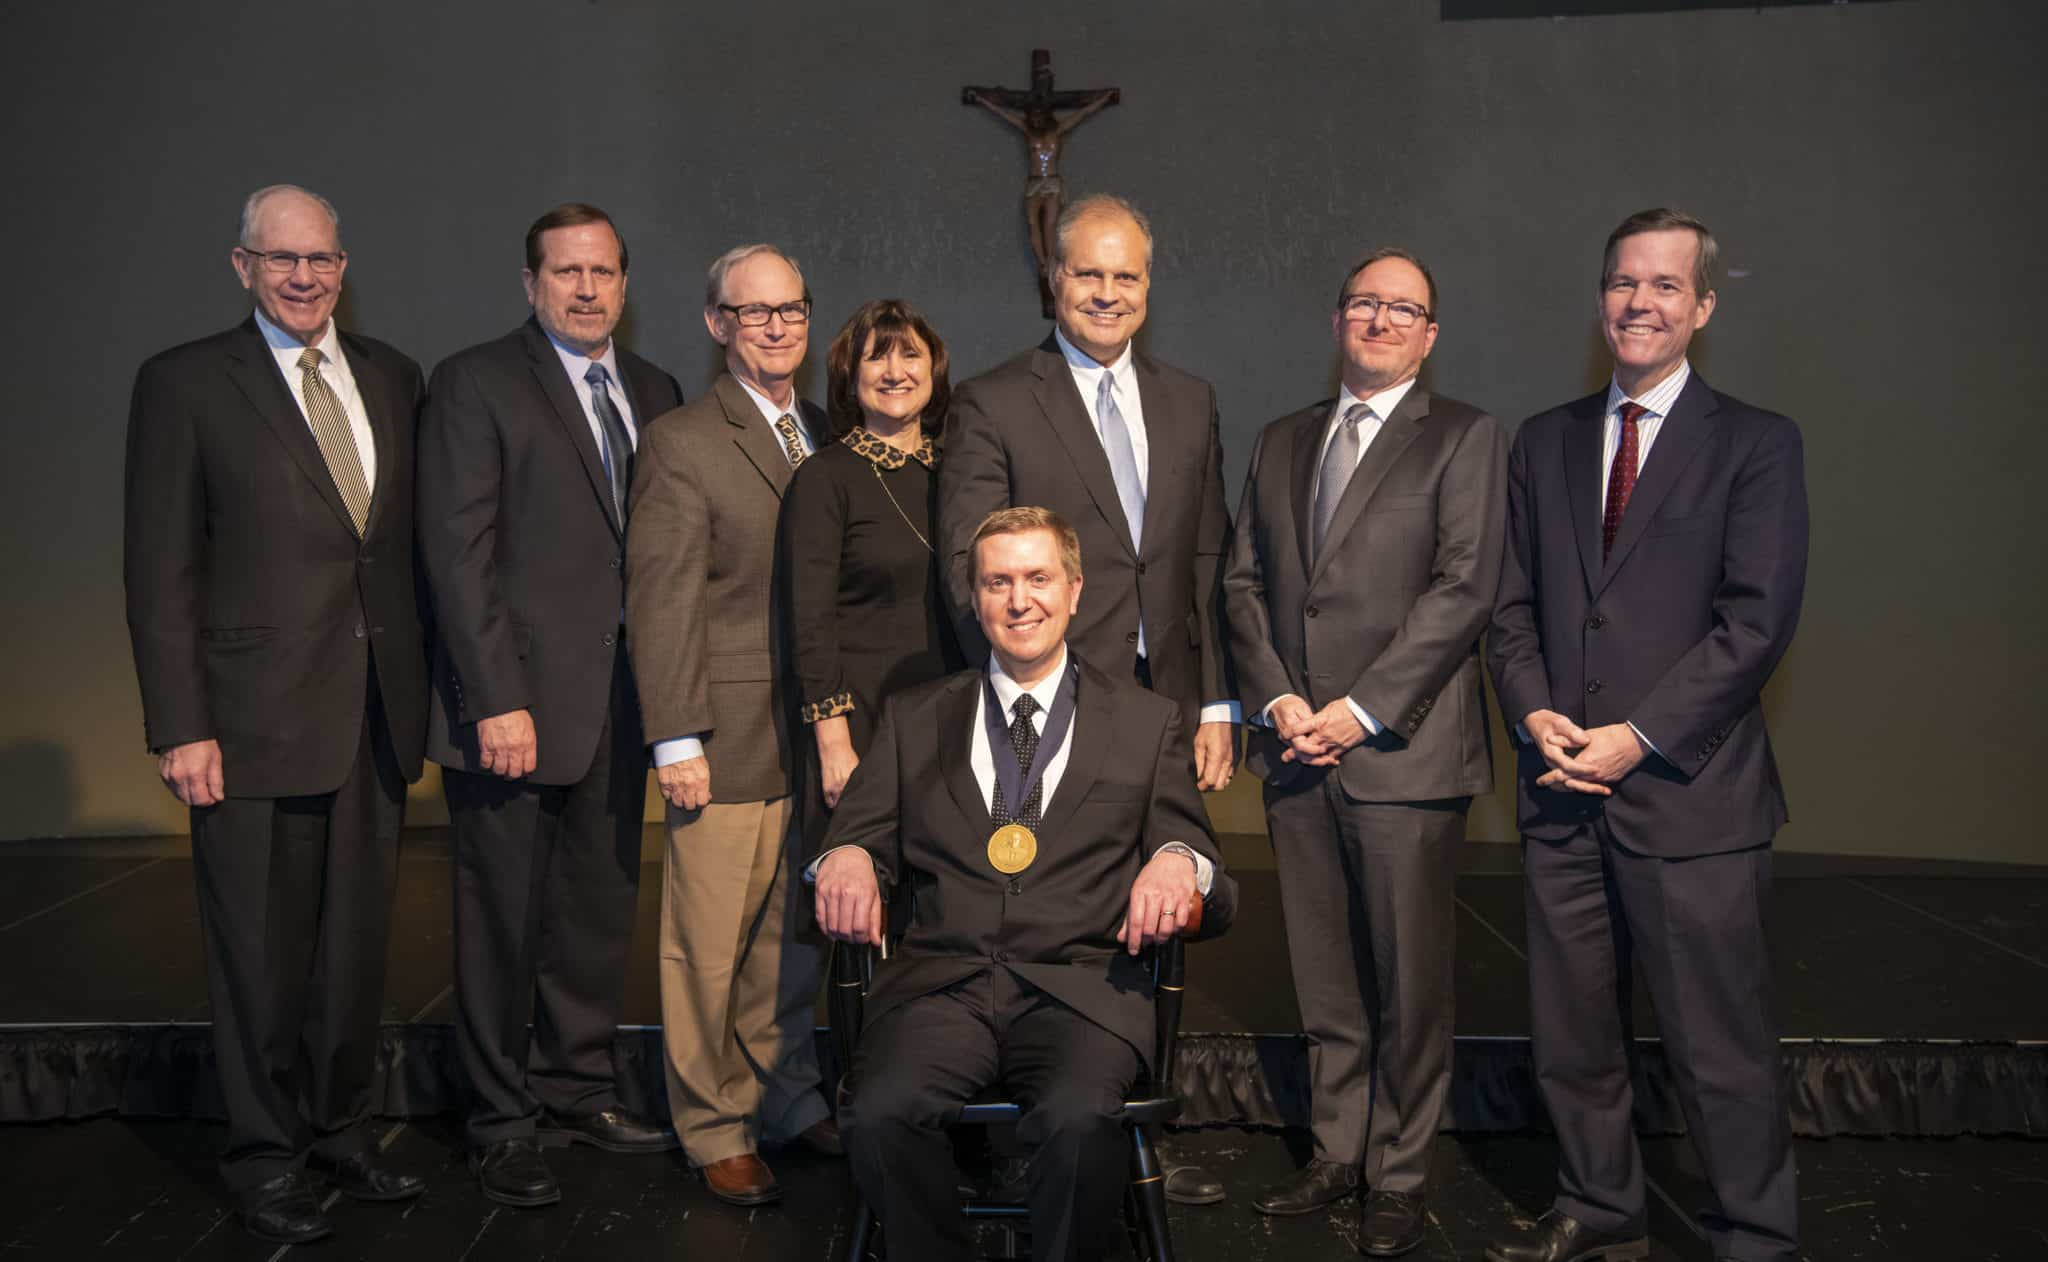 Scott Dickson, M.D. (seated) was invested Feb. 6 in the chair, which is awarded on a three-year, rotating basis.